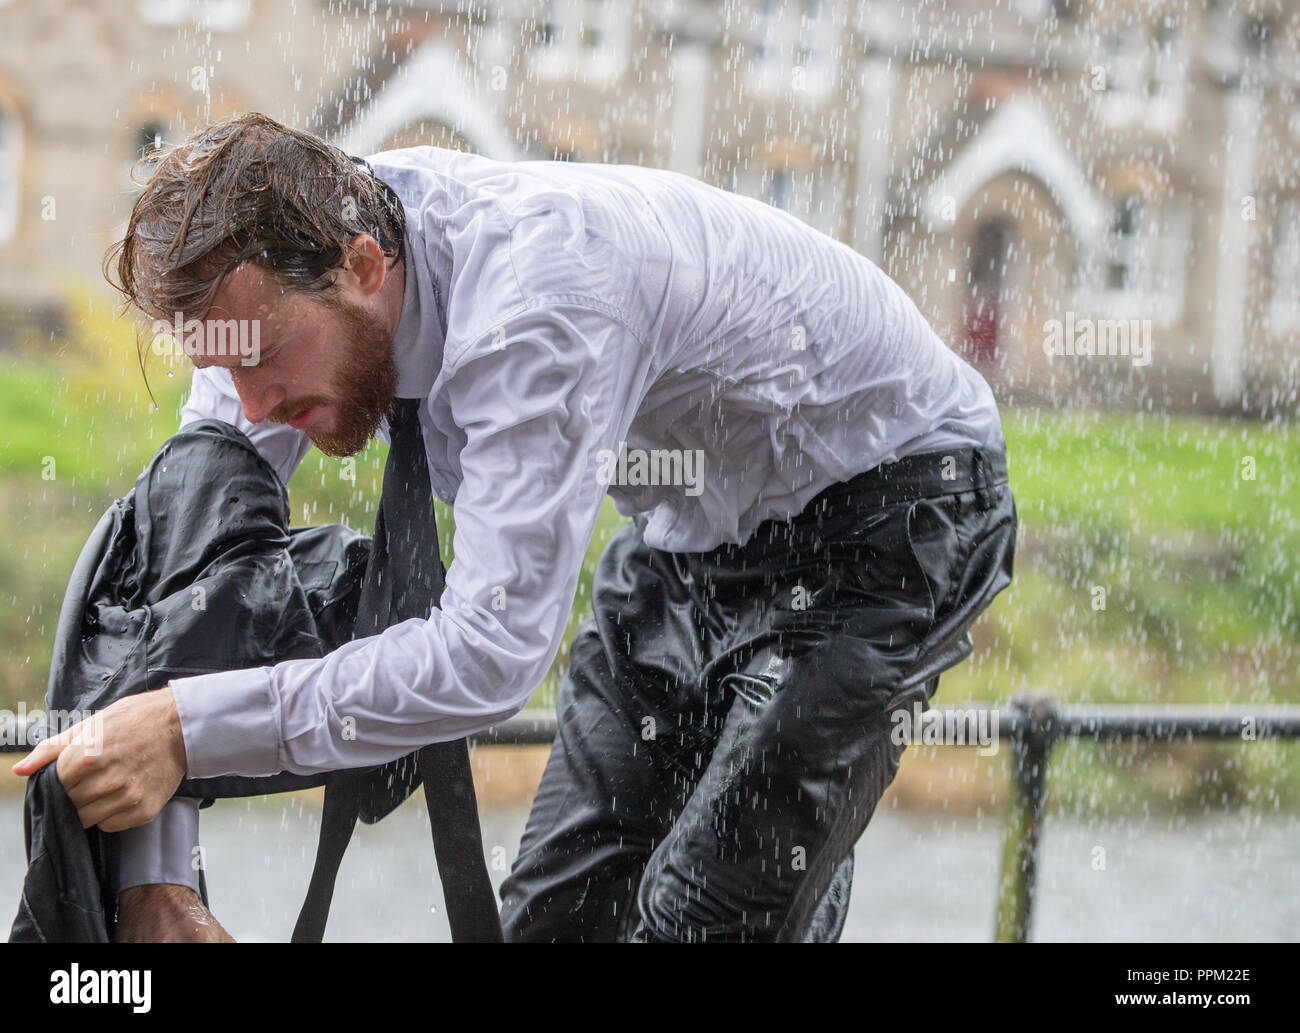 A man in a suit caught in a very heavy rain shower Stock Photo